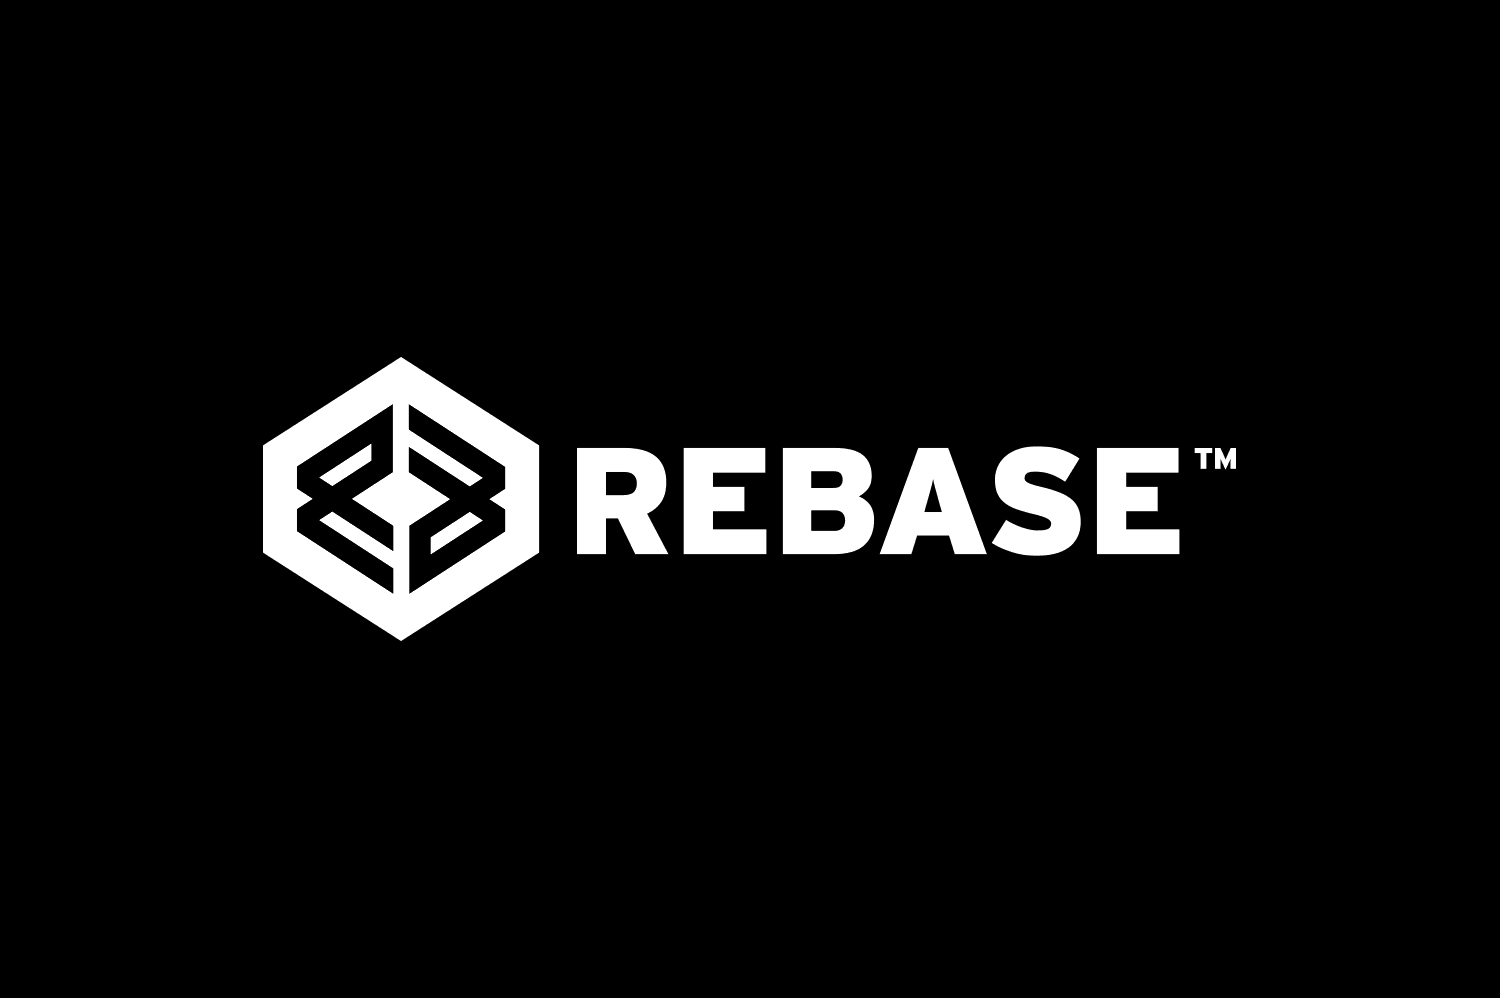 Rebase Database Systems Logo Designed by Freelance Logo Designer, The Logo Smith.